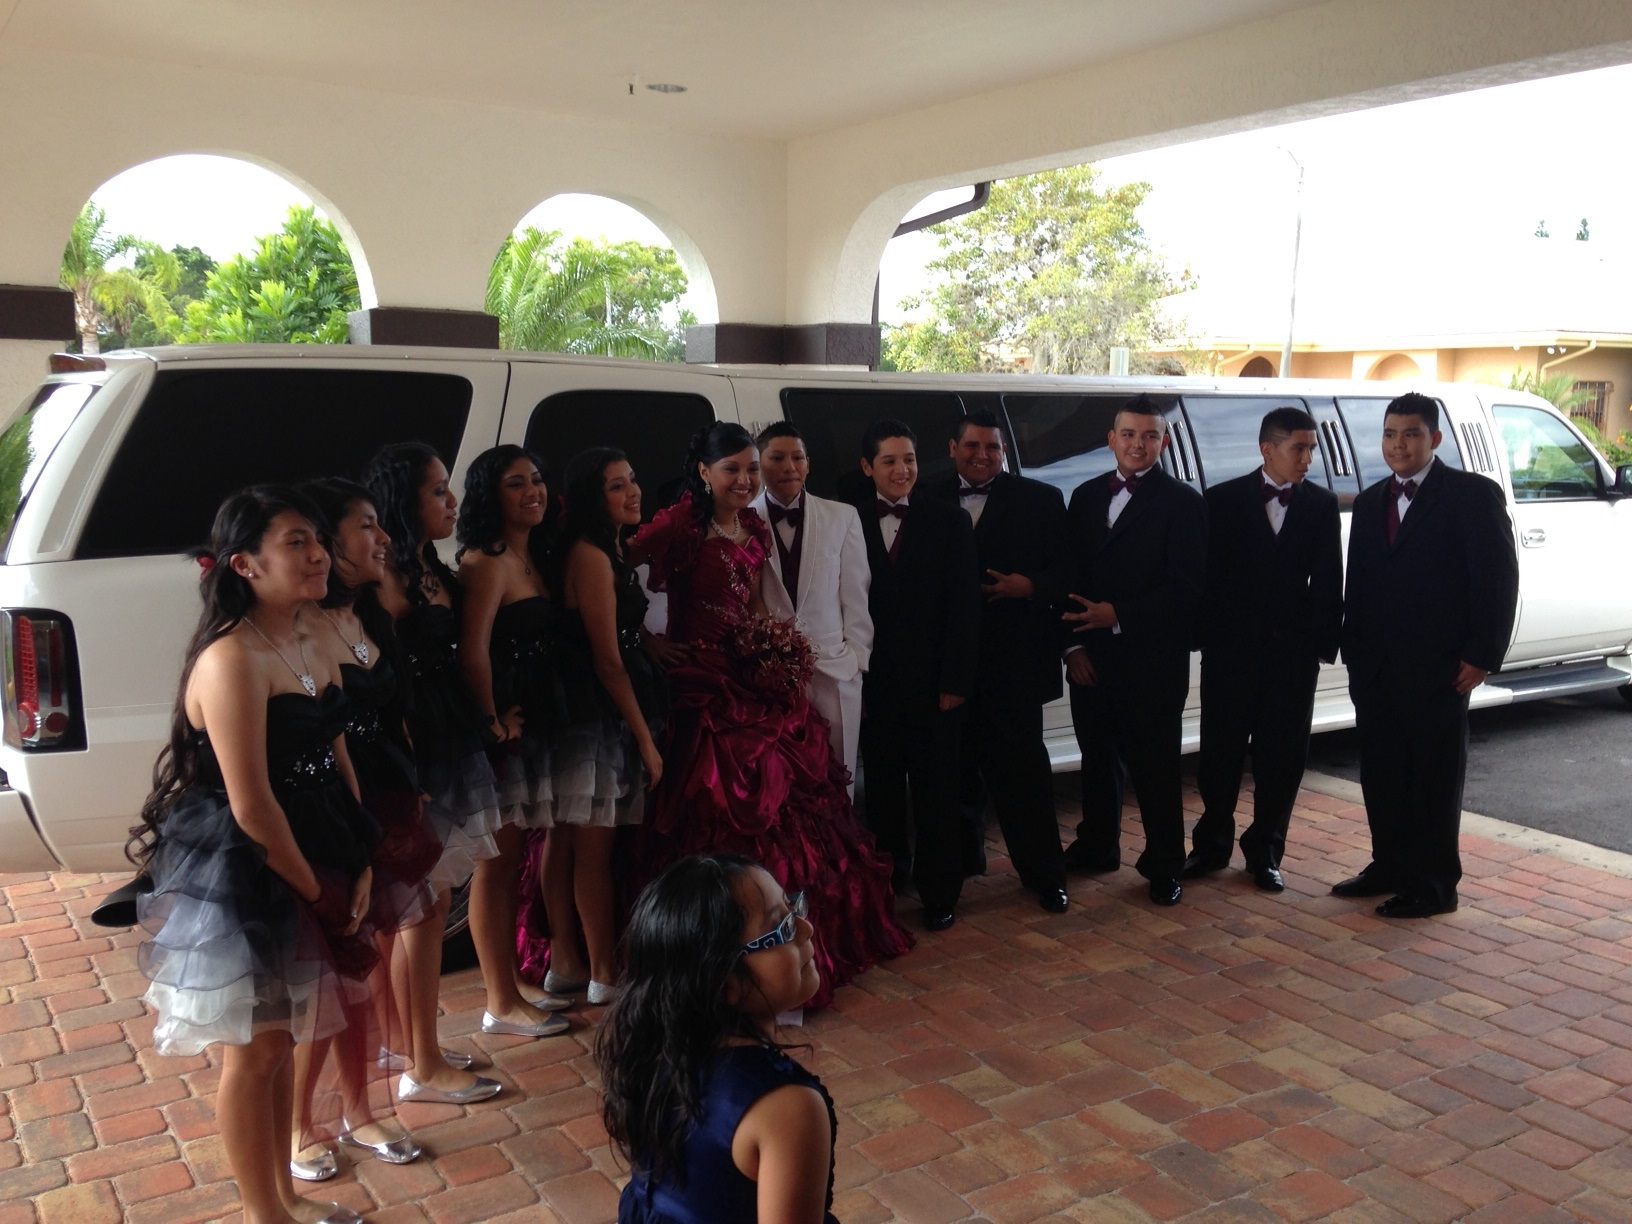 Quinceanera Group poses with Escalade Limo